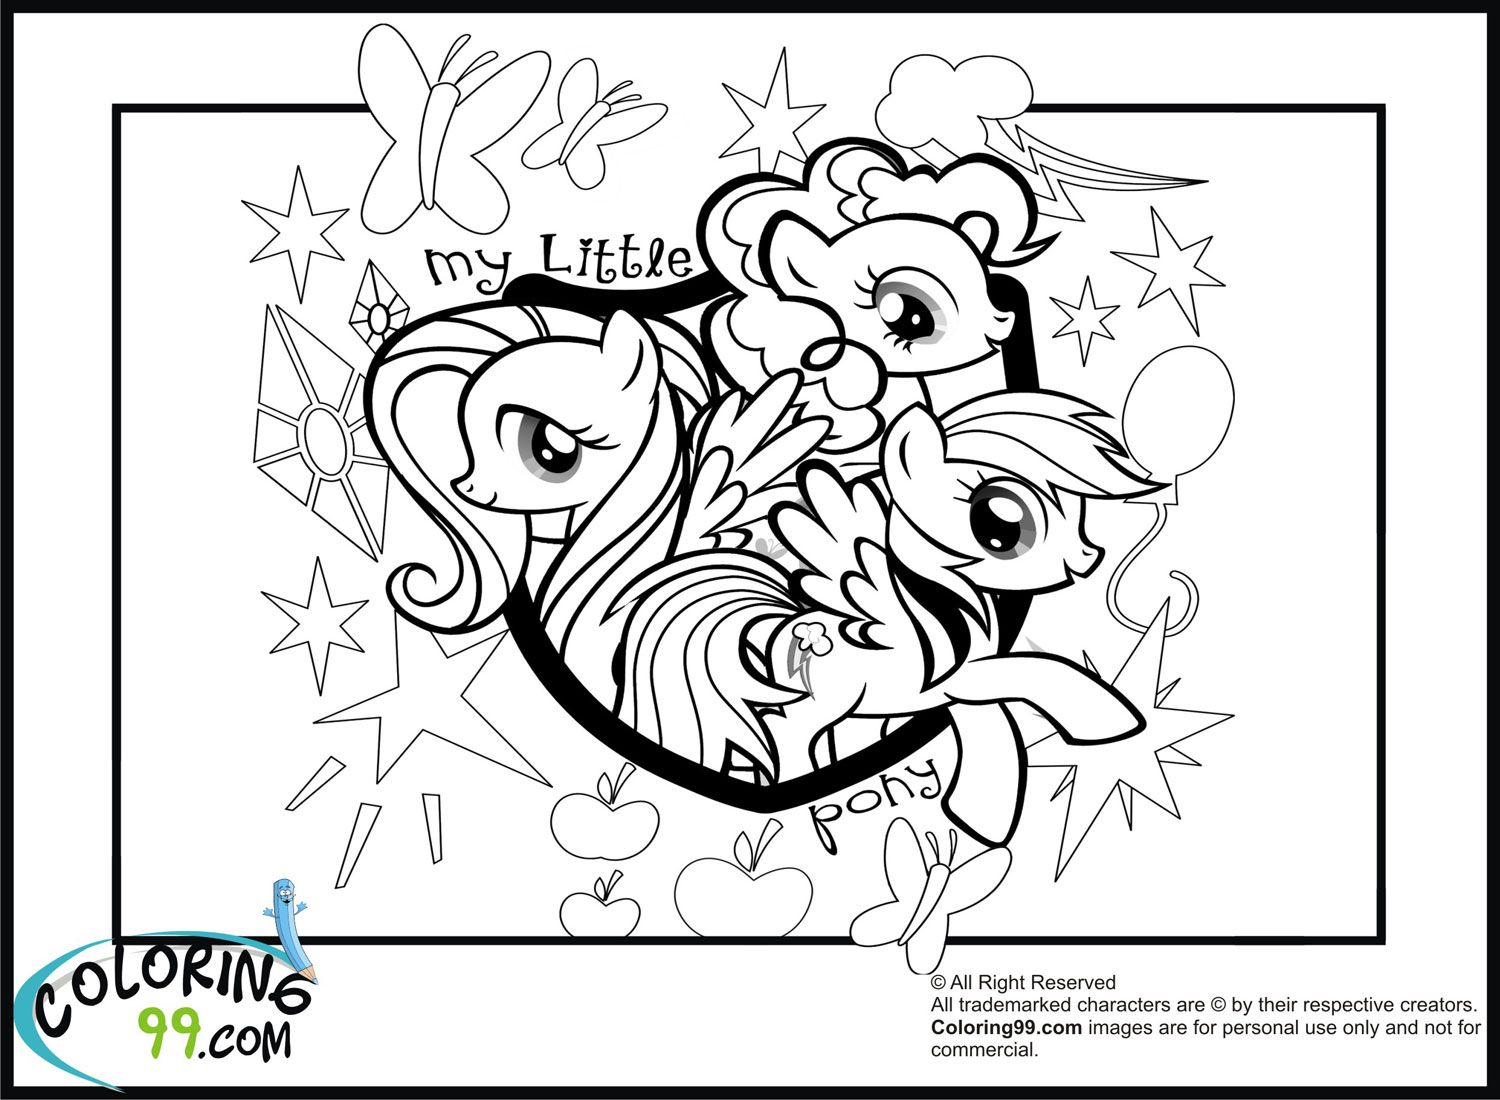 My little pony rainbow rocks coloring pages games - My Little Pony Games Coloring Pages In Color My Little Pony Coloring Pages To Print